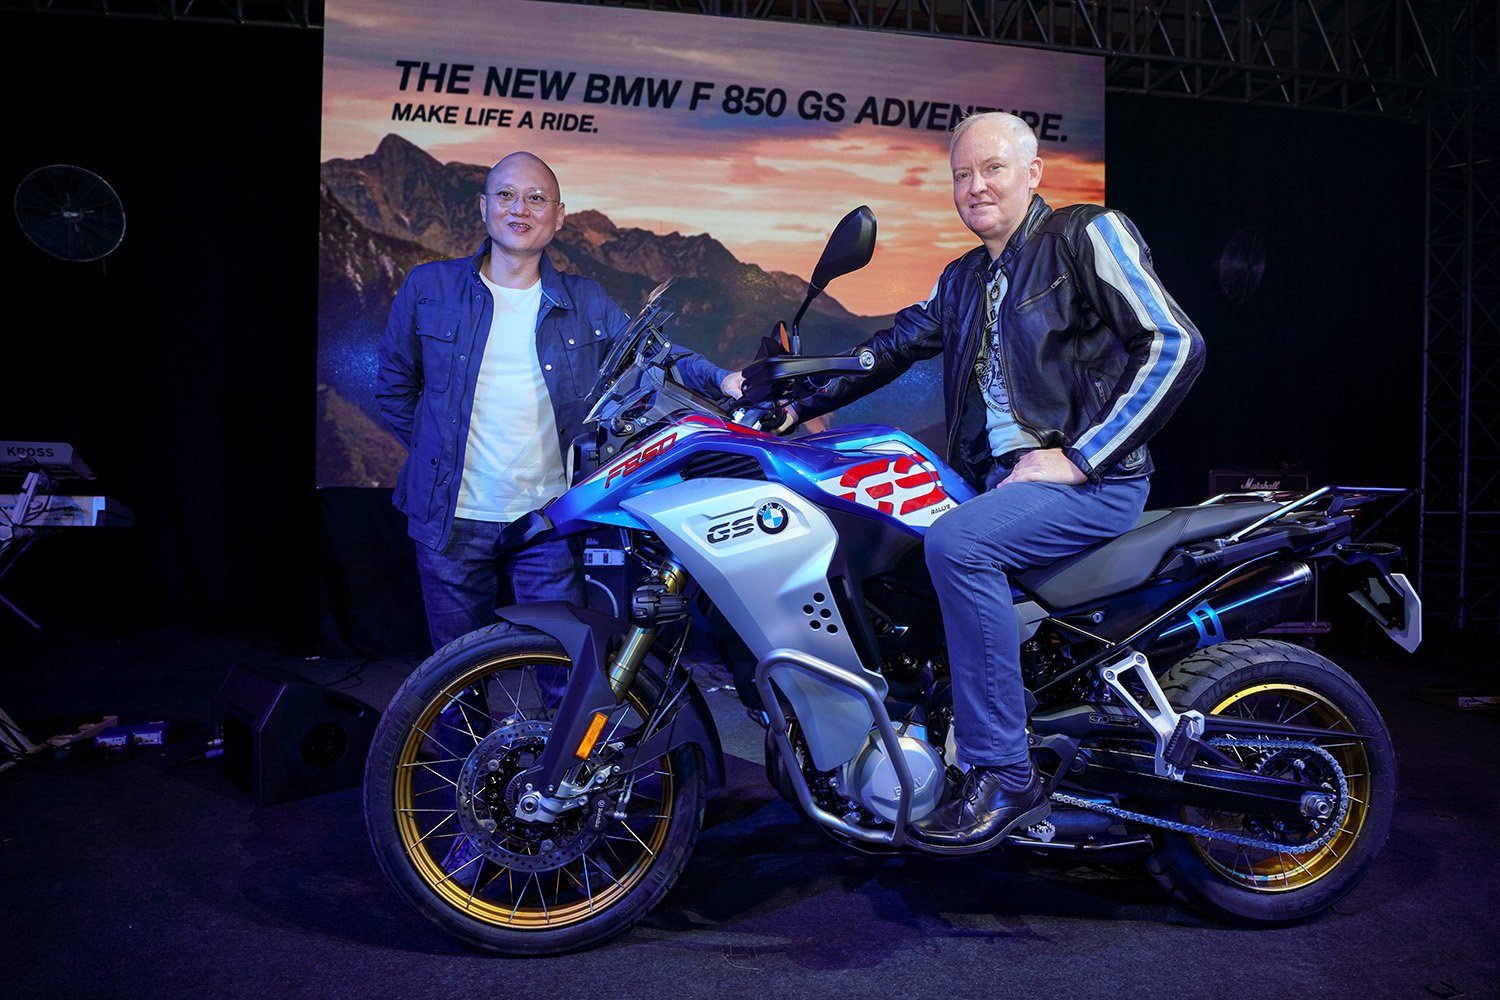 BMW Motorrad Malaysia Introduces Three New Adventure Motorcycles to Make Life A Ride.